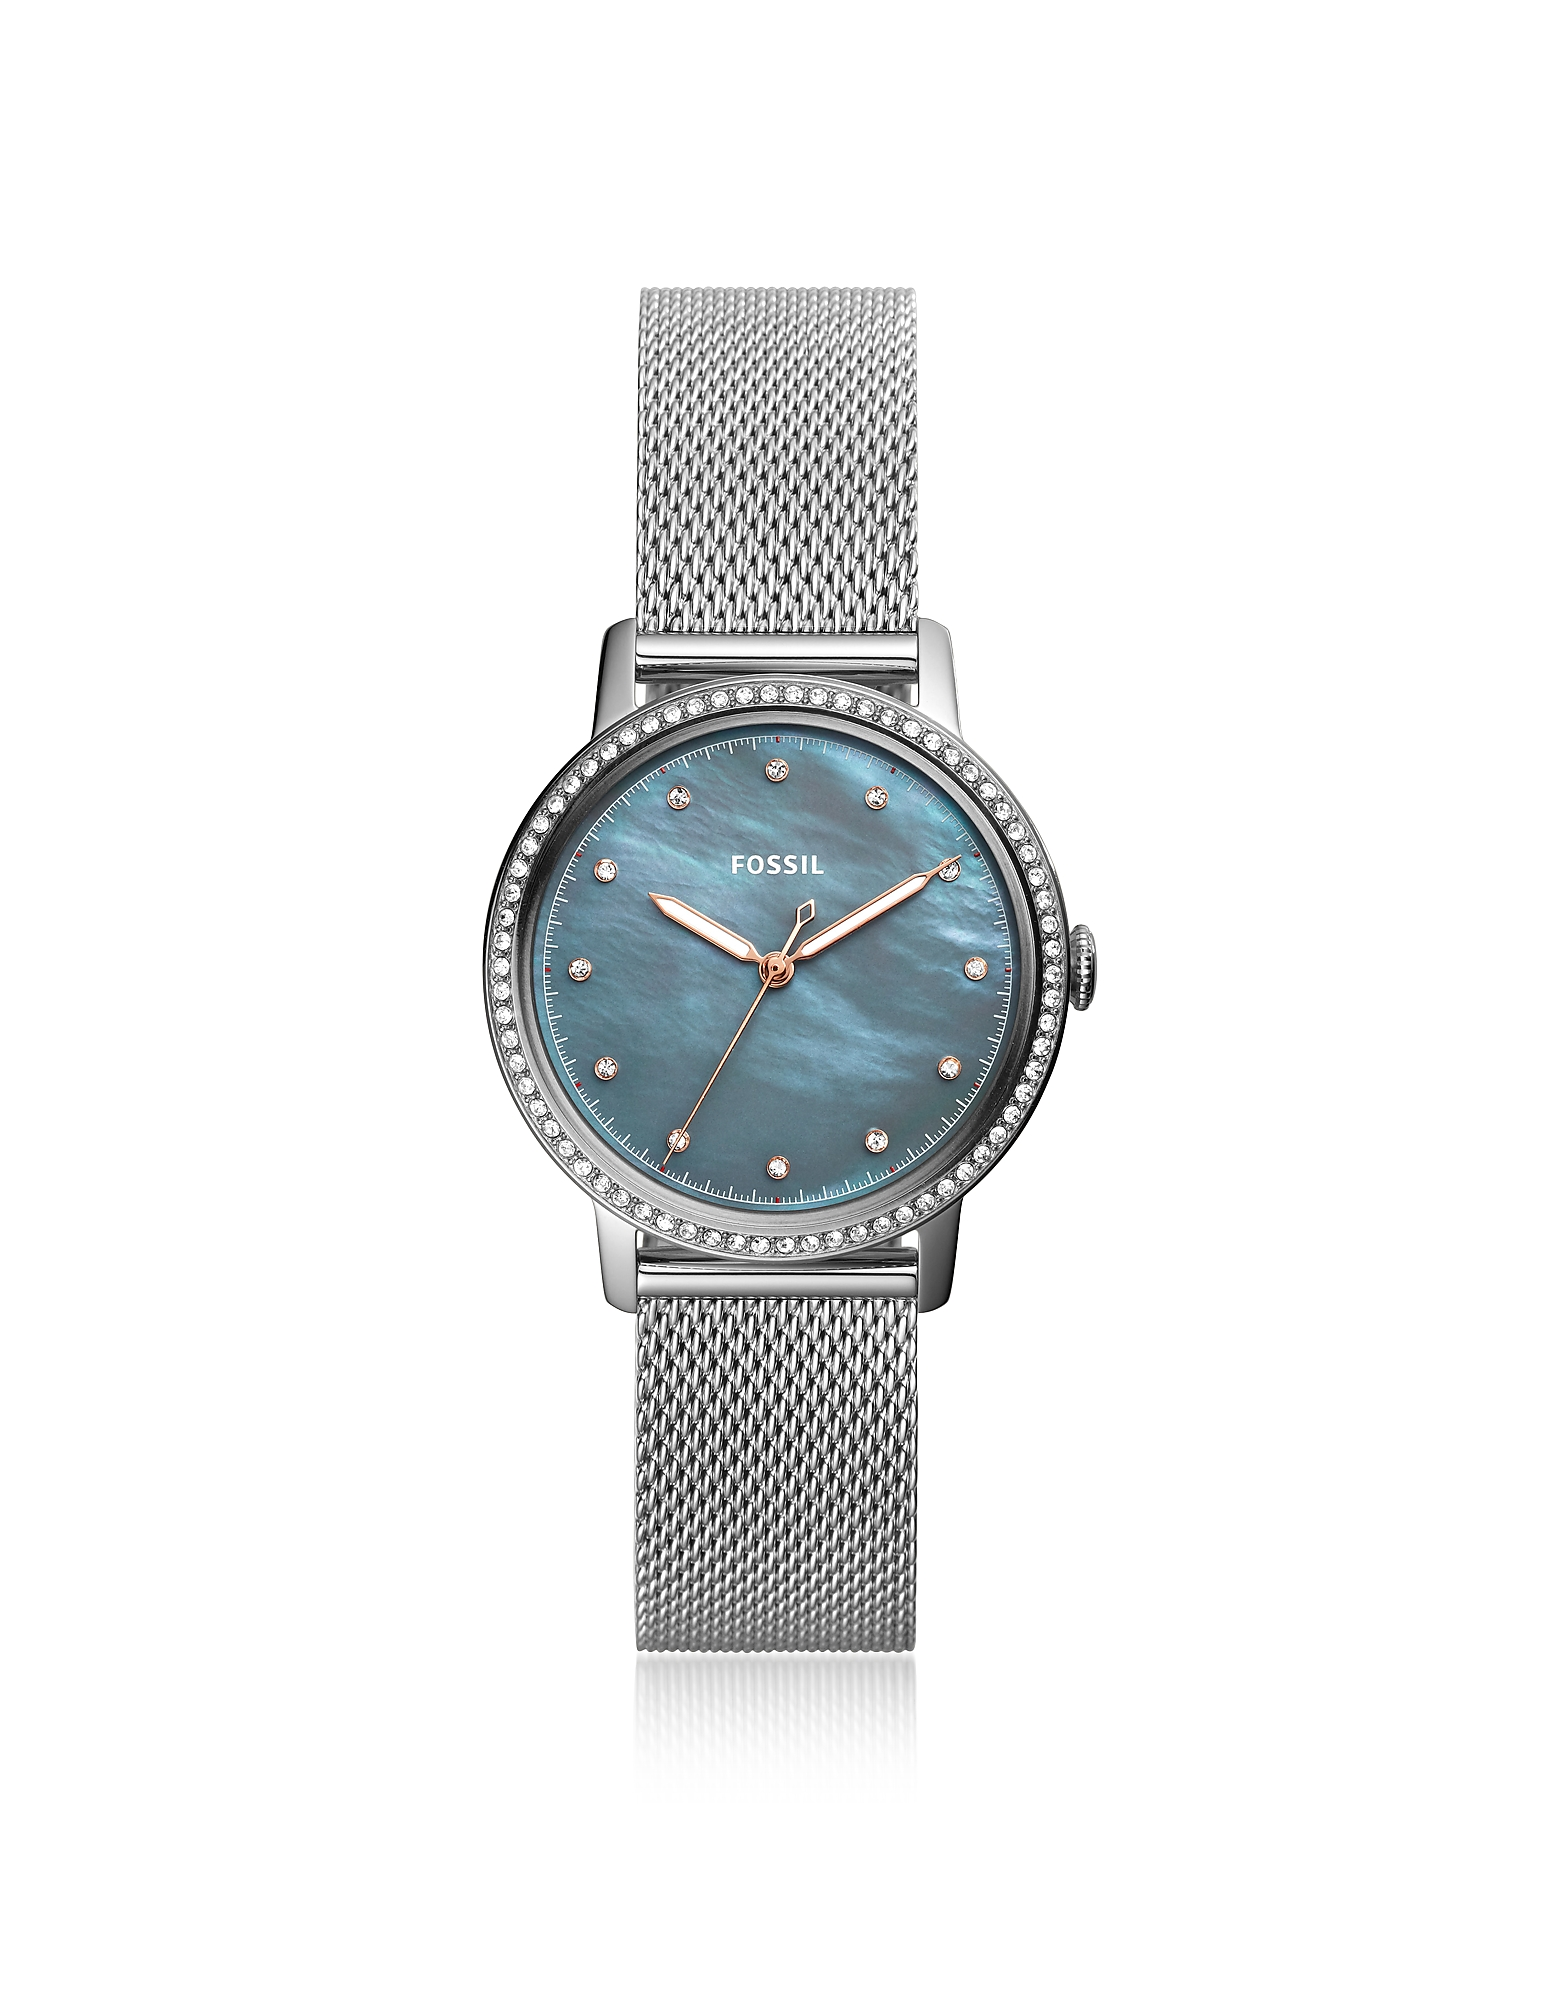 Fossil Women's Watches, Neely Three Hand Stainless Steel Crystal Women's Watch